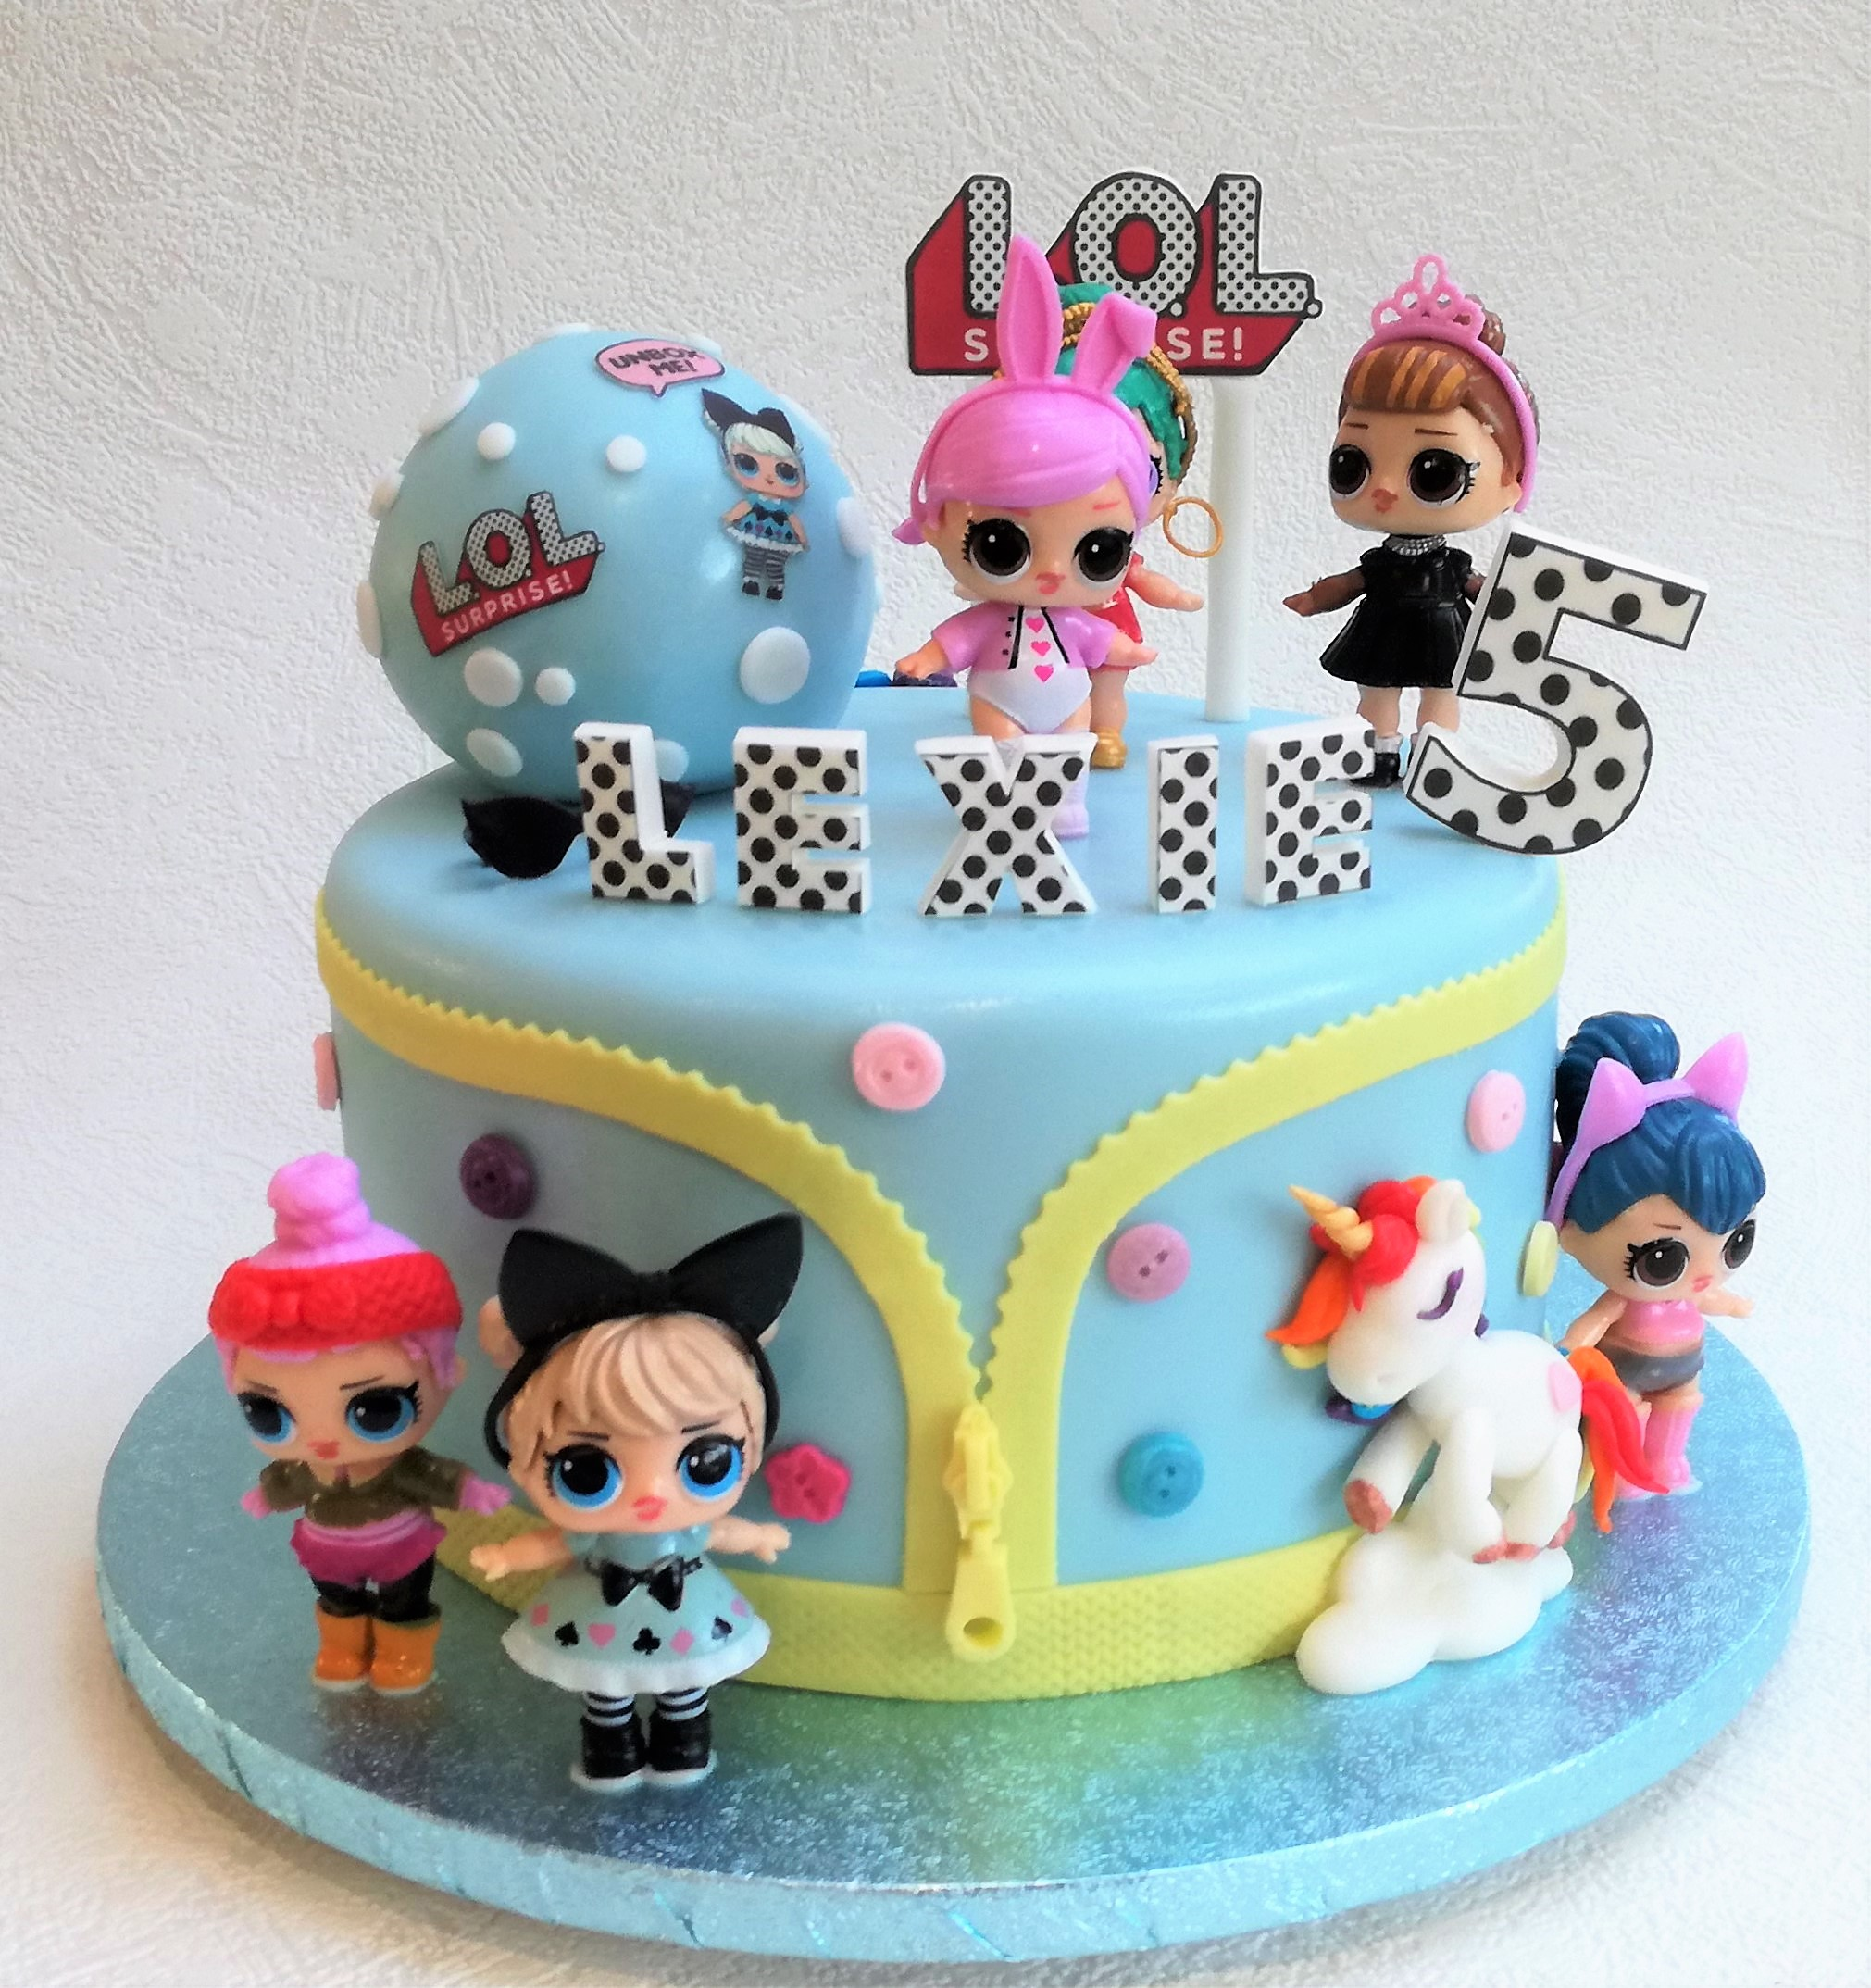 LOL Surprise Dolls cake